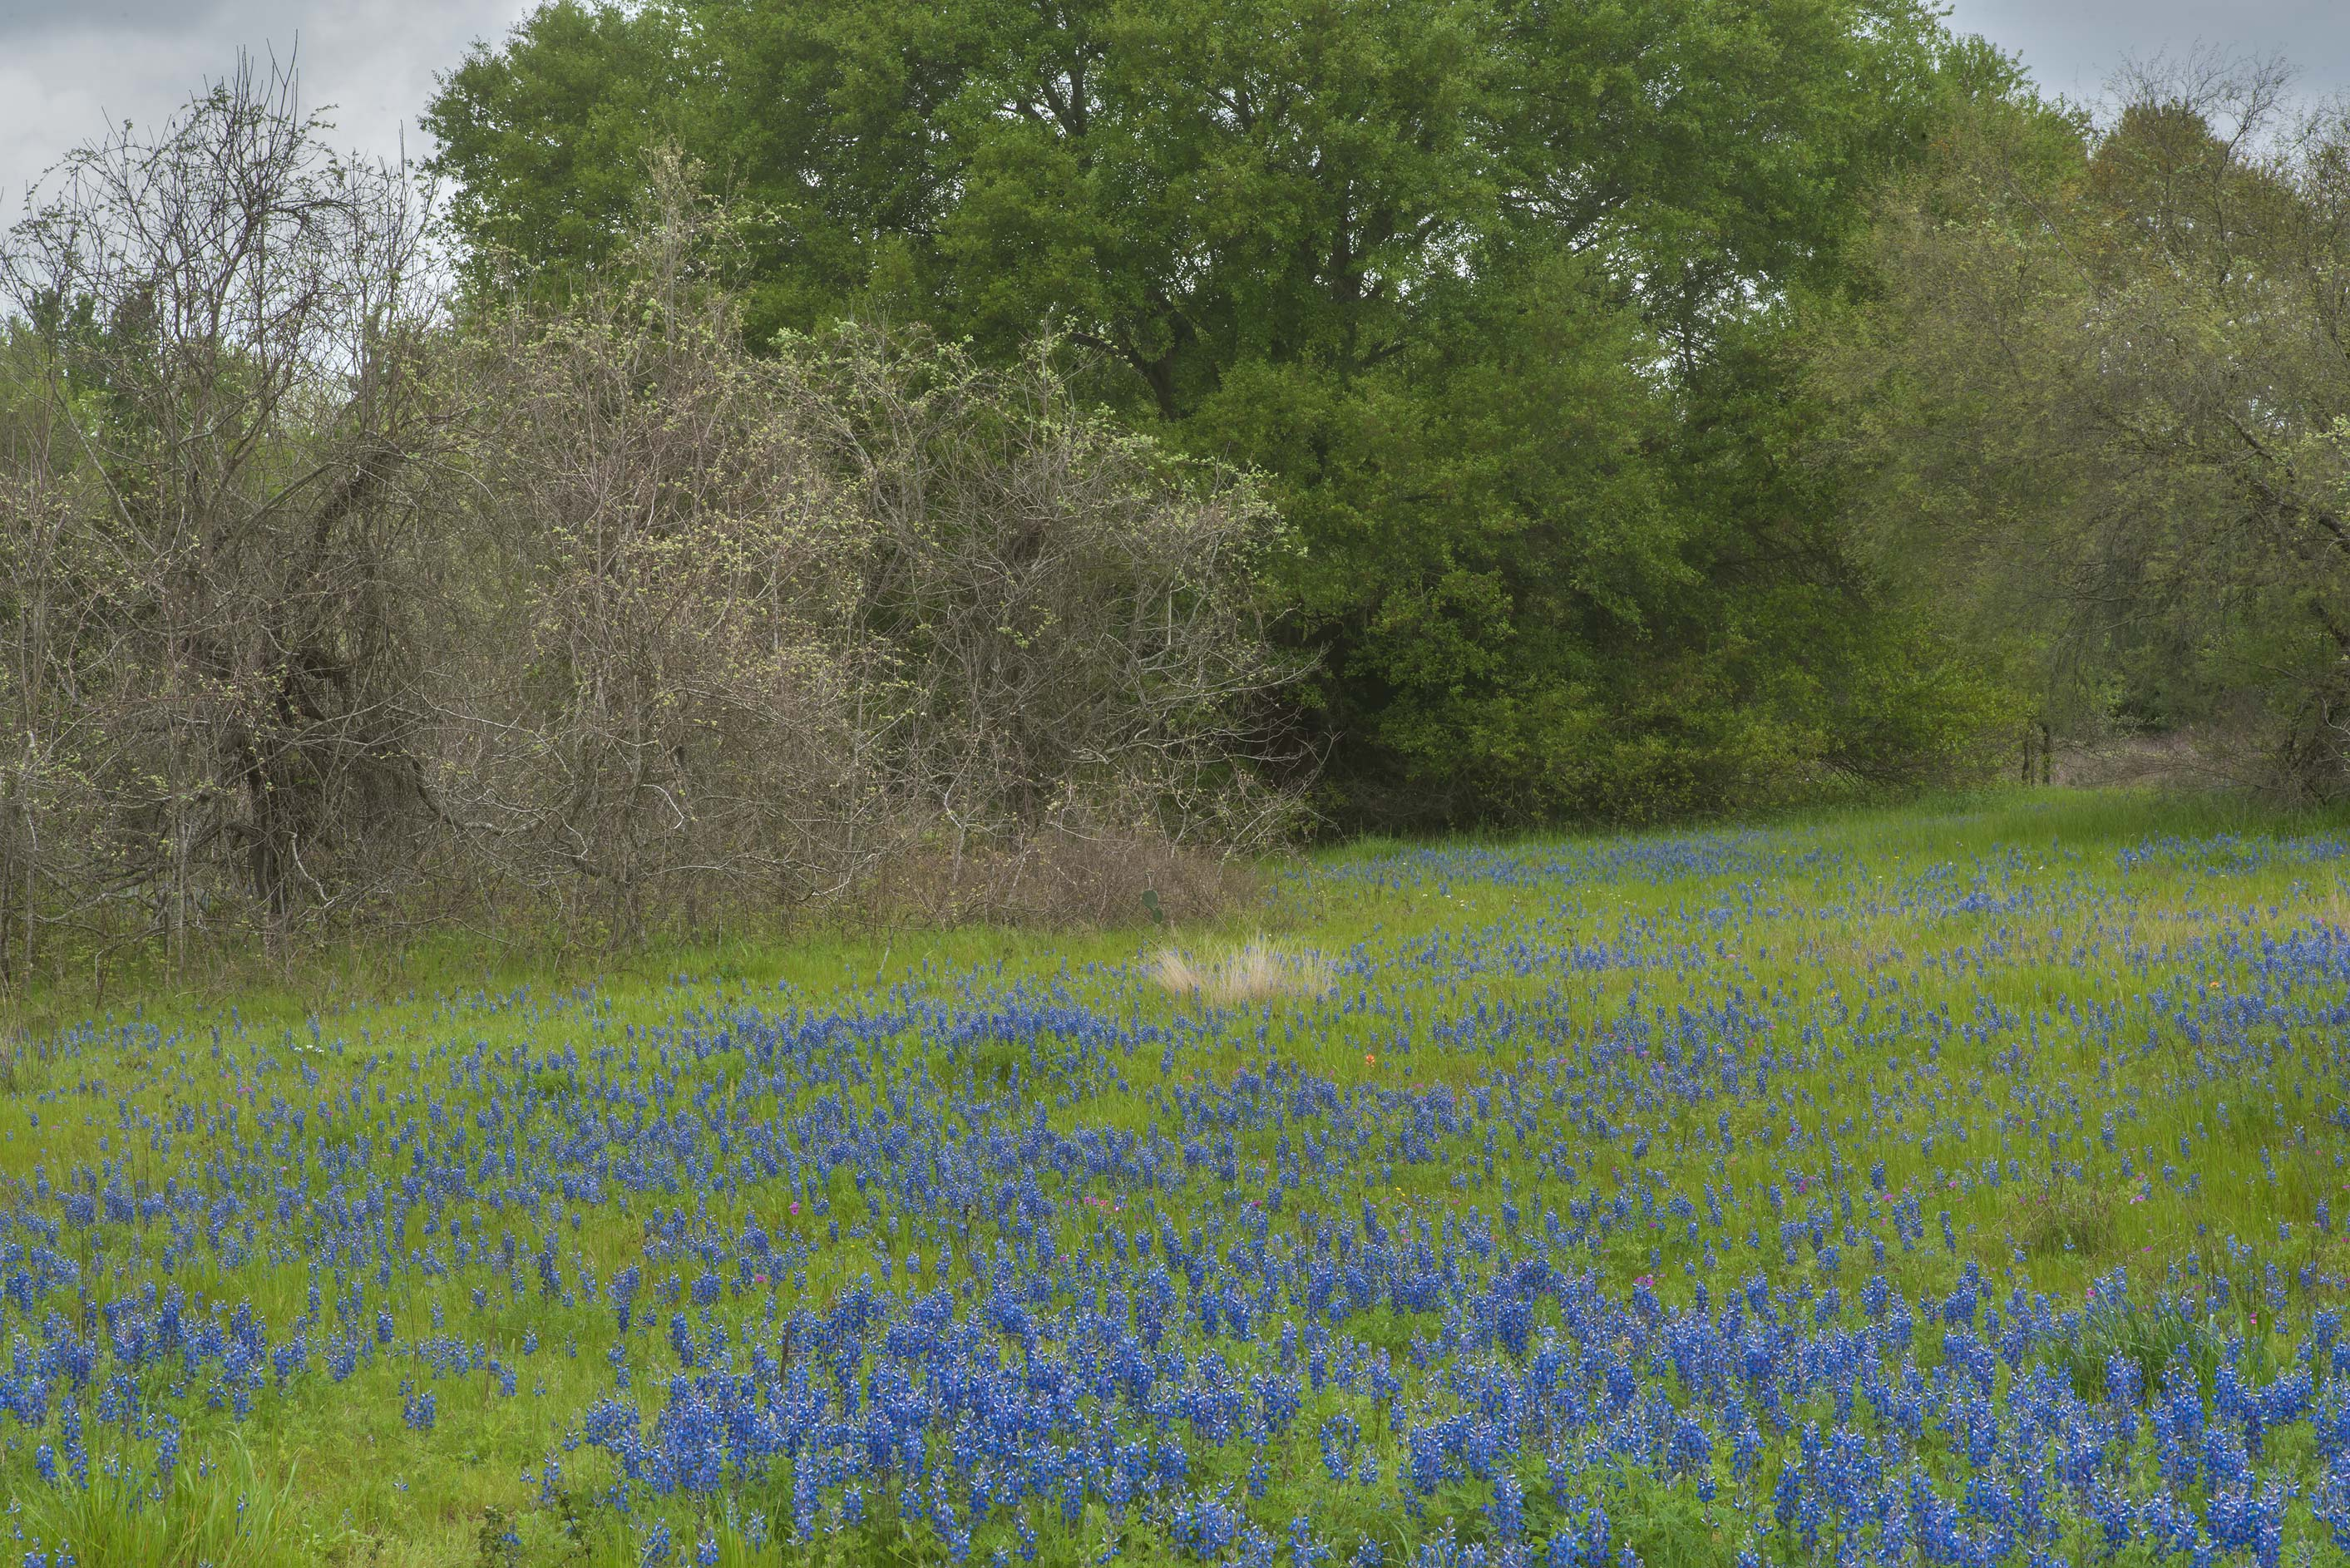 Field of bluebonnet (Lupinus) in Washington-on...State Historic Site. Washington, Texas